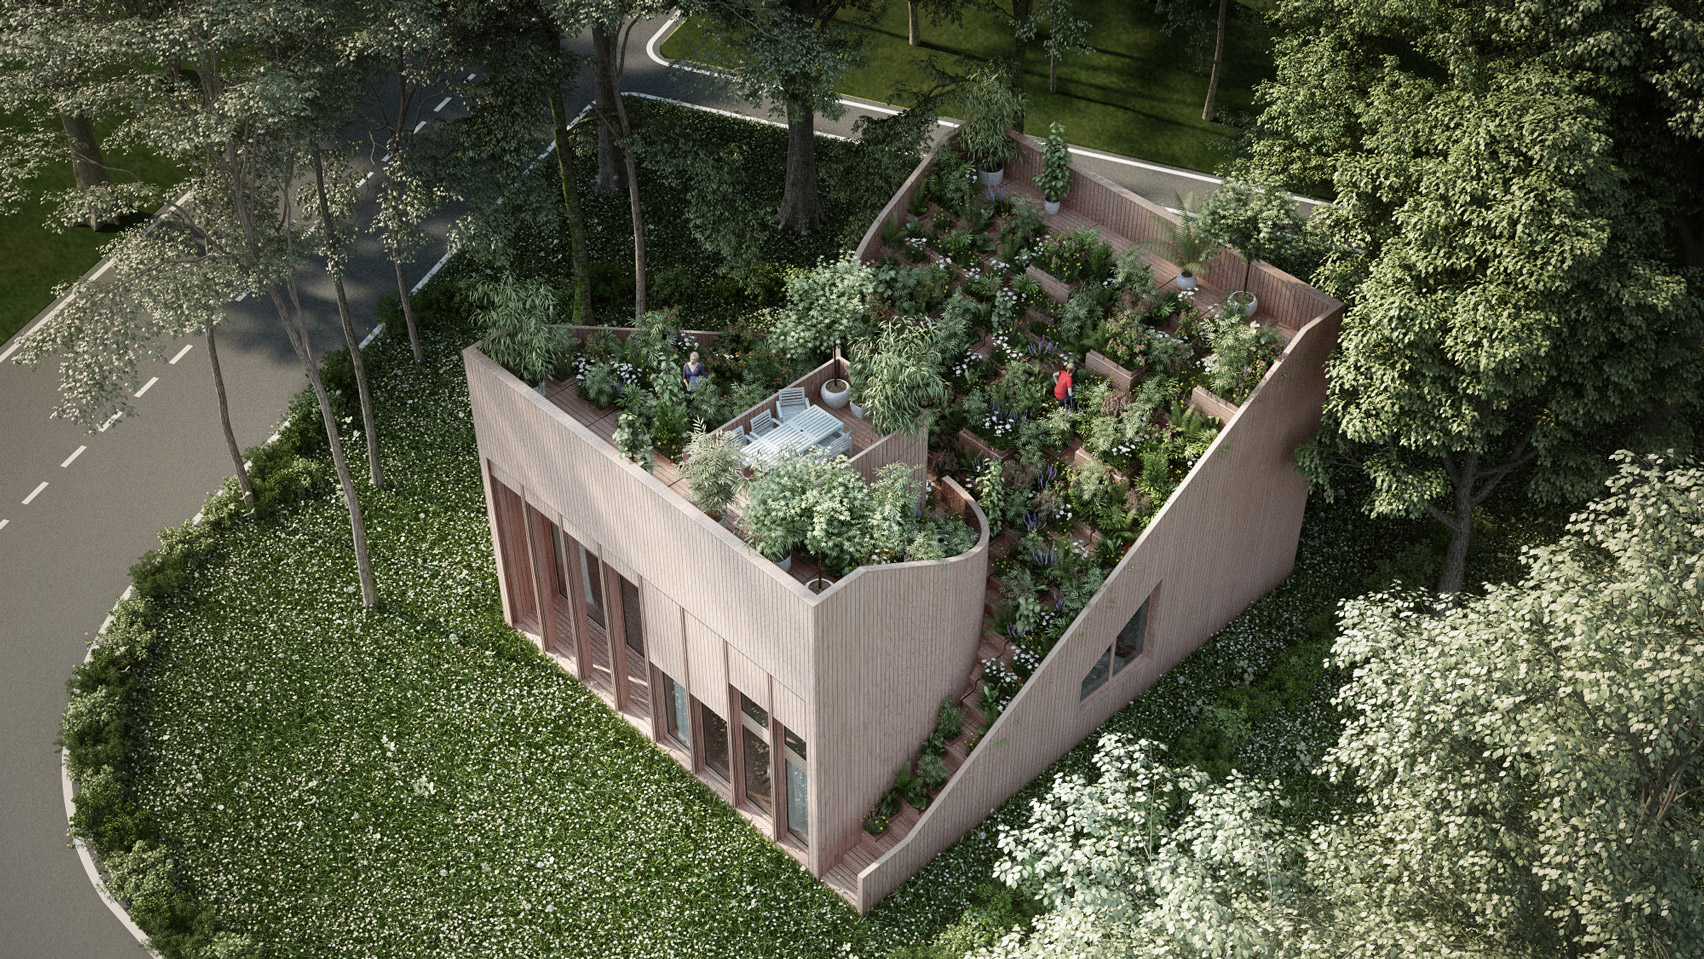 Architectural Dream for a Self-sufficient Home